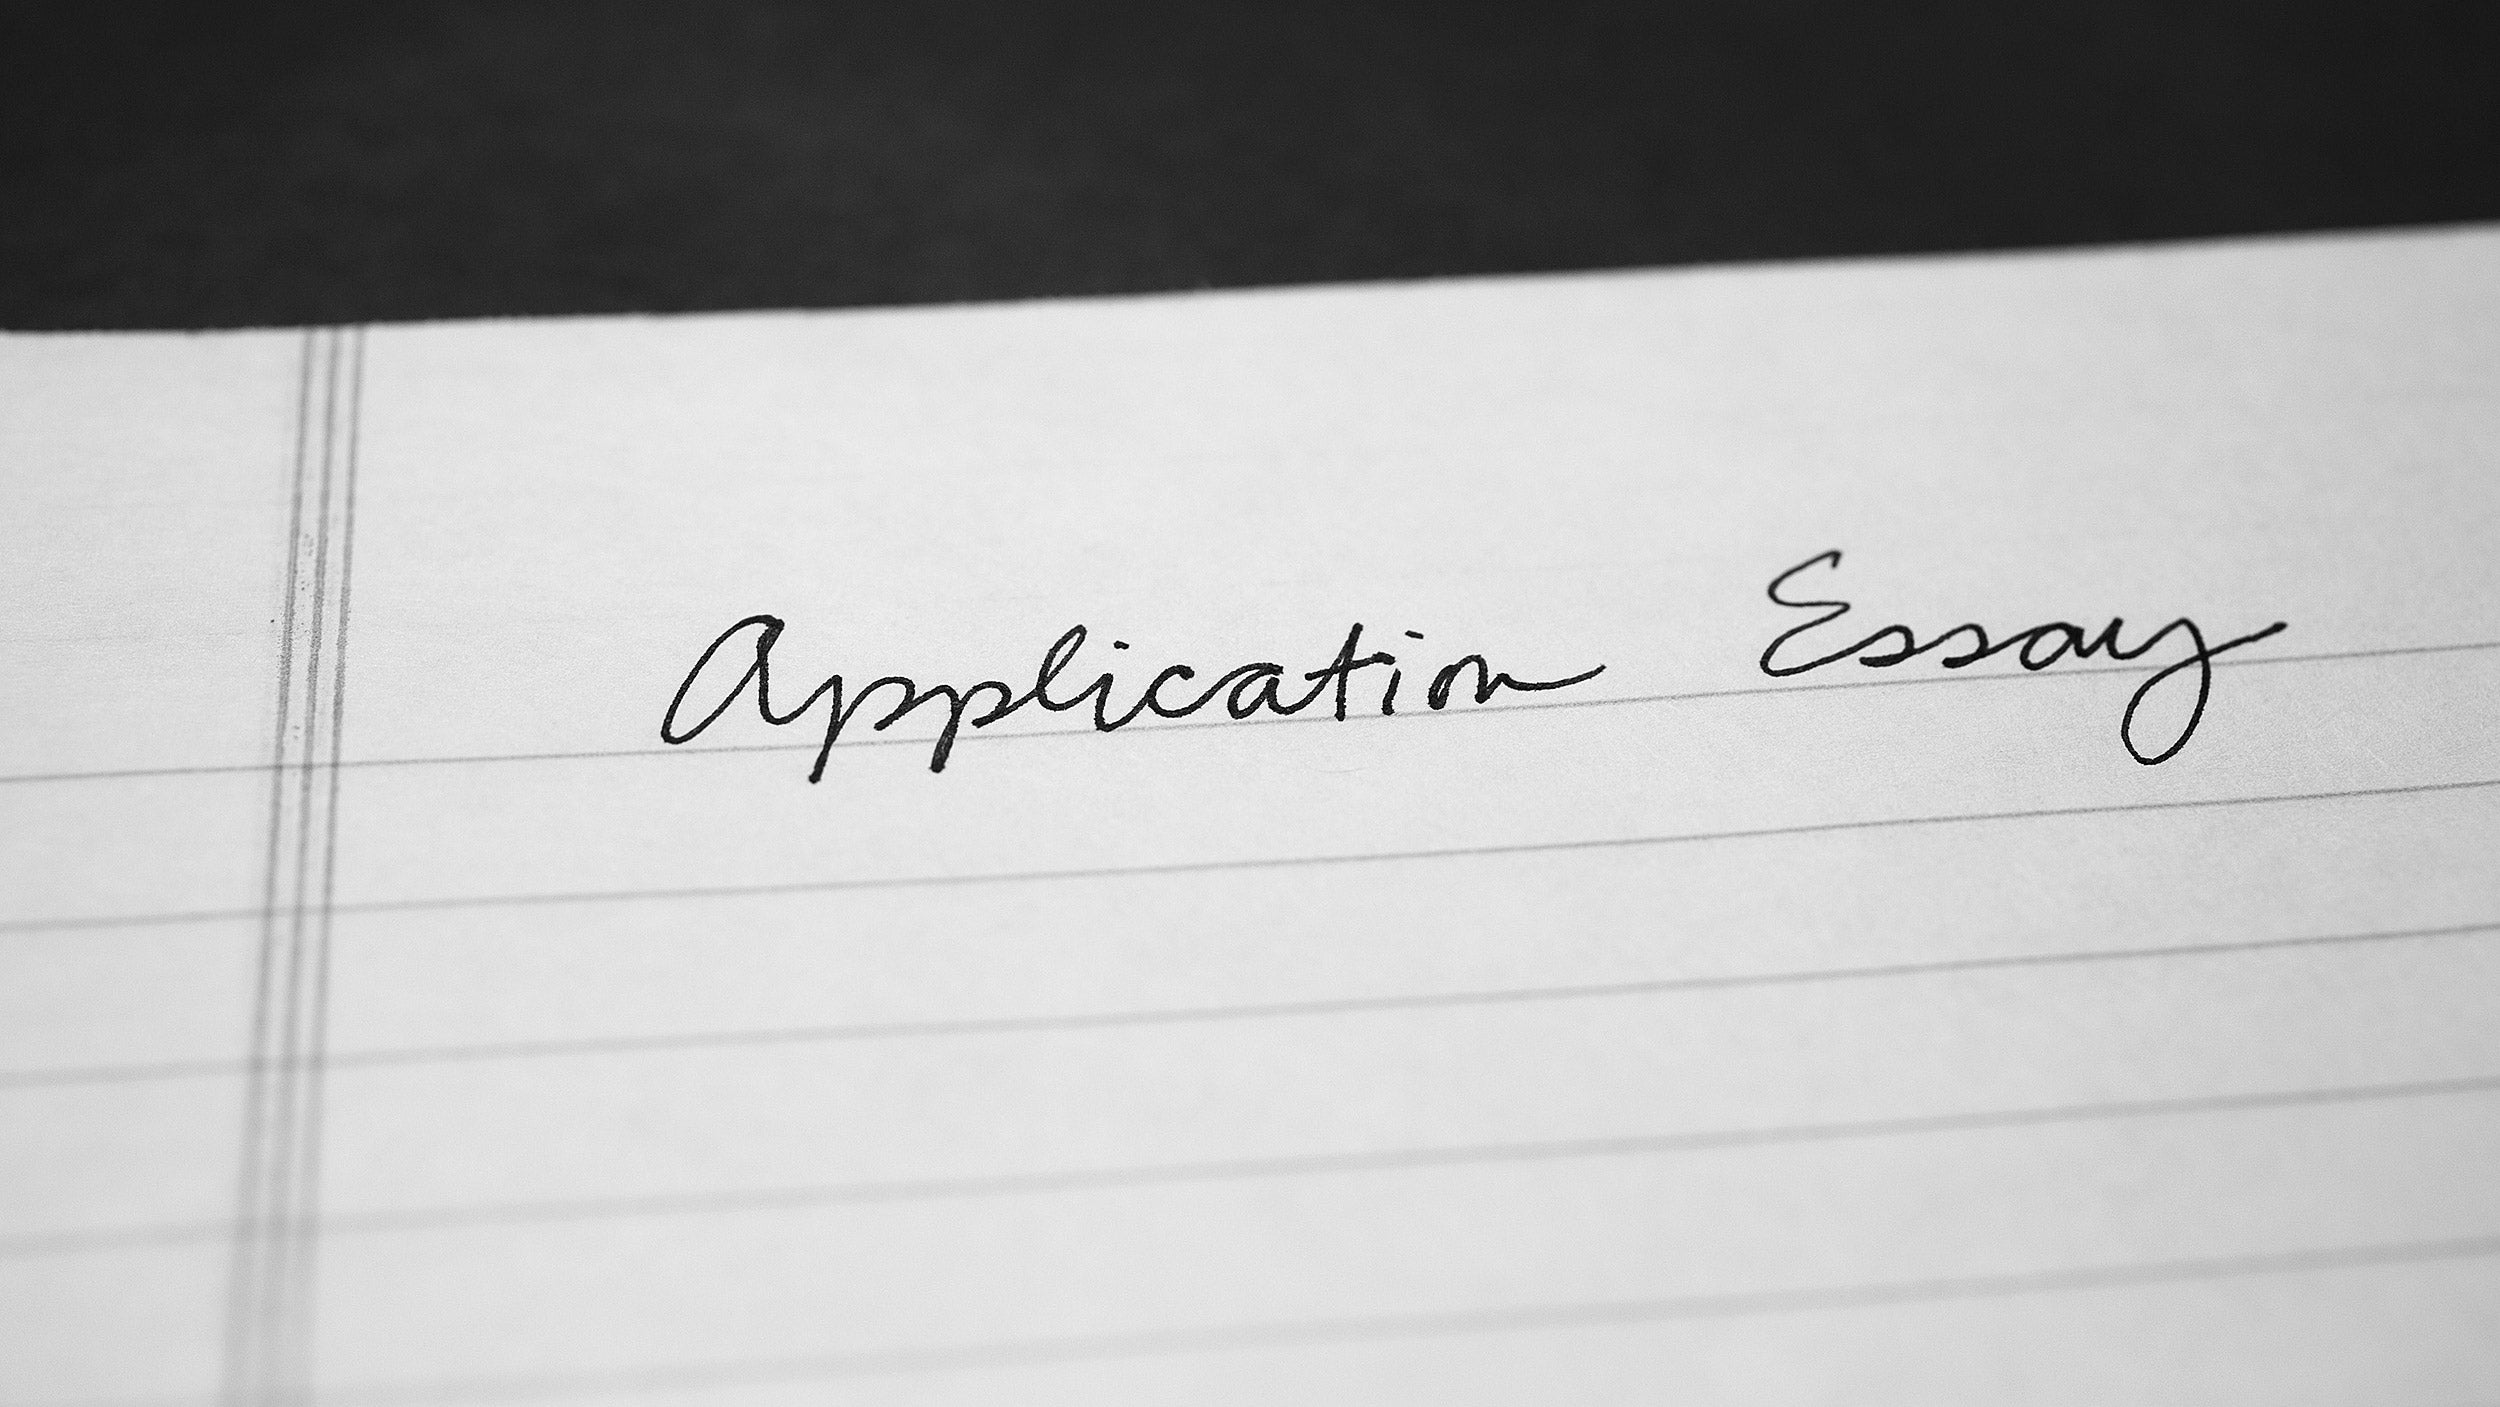 Application essay.